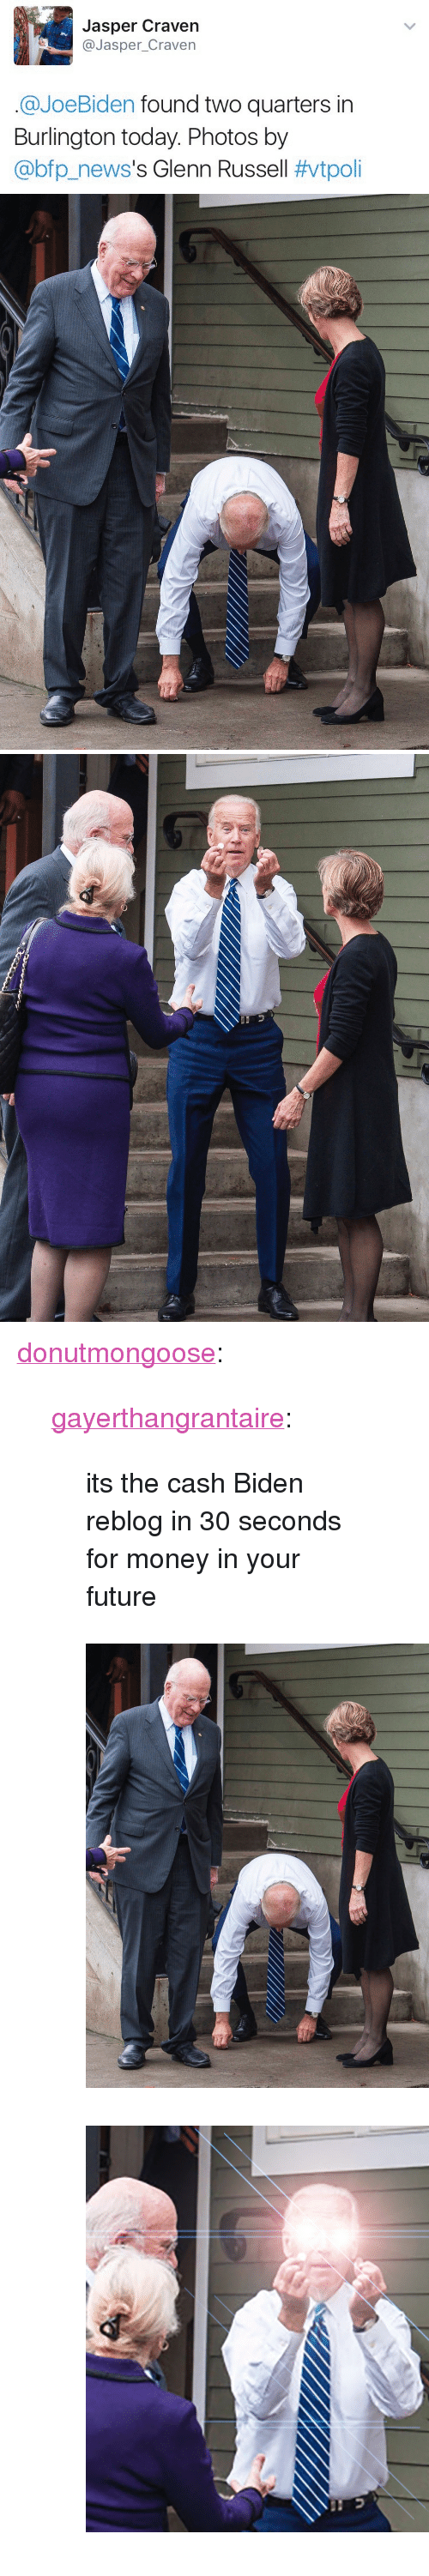 "Glenn: Jasper Craven  @Jasper_Craven  @JoeBiden found two quarters in  Burlington today. Photos by  @bp.news's Glenn Russell <p><a href=""http://donutmongoose.tumblr.com/post/155448667420/gayerthangrantaire-its-the-cash-biden-reblog-in"" class=""tumblr_blog"">donutmongoose</a>:</p>  <blockquote><p><a href=""http://gayerthangrantaire.tumblr.com/post/153355558604"" class=""tumblr_blog"">gayerthangrantaire</a>:</p> <blockquote><p>its the cash Biden reblog in 30 seconds for money in your future</p></blockquote> <figure class=""tmblr-full"" data-orig-height=""518"" data-orig-width=""400""><img src=""https://78.media.tumblr.com/8aa641e925cfb780f4858fe3558ec4c3/tumblr_inline_ojbqh7avc41u0ah77_540.jpg"" data-orig-height=""518"" data-orig-width=""400""/></figure><figure class=""tmblr-full"" data-orig-height=""614"" data-orig-width=""700""><img src=""https://78.media.tumblr.com/52723c80a12821bad3c859b0d637d474/tumblr_inline_ojbqhcRPpY1u0ah77_540.png"" data-orig-height=""614"" data-orig-width=""700""/></figure></blockquote>"